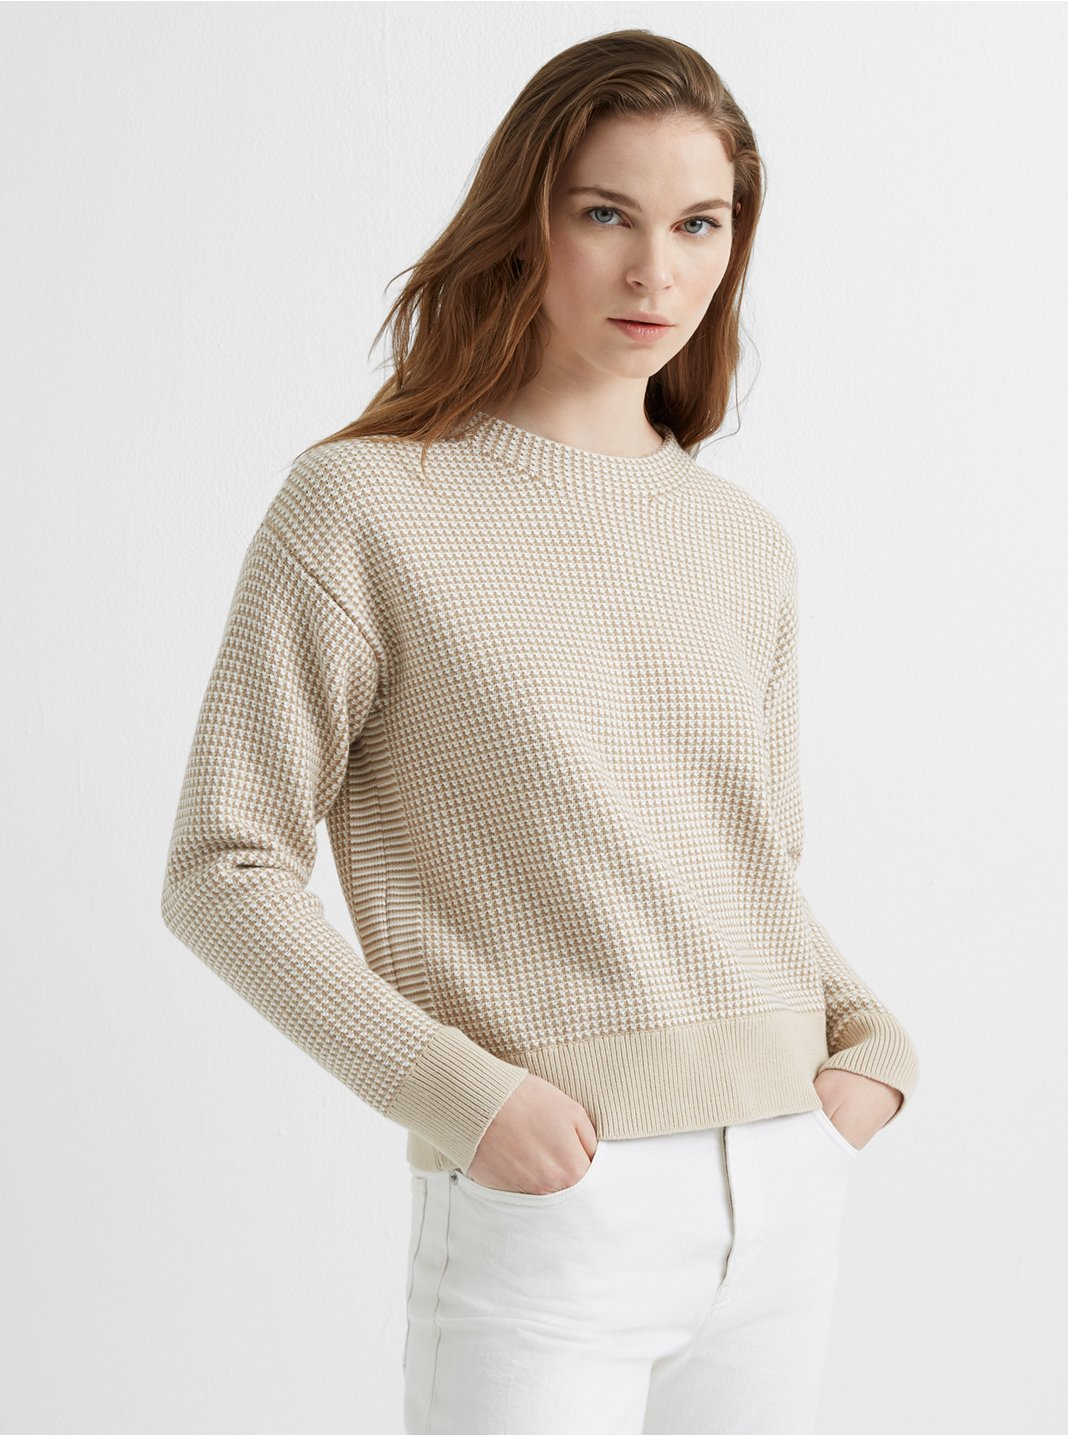 Tri-Color Stitch Sweater